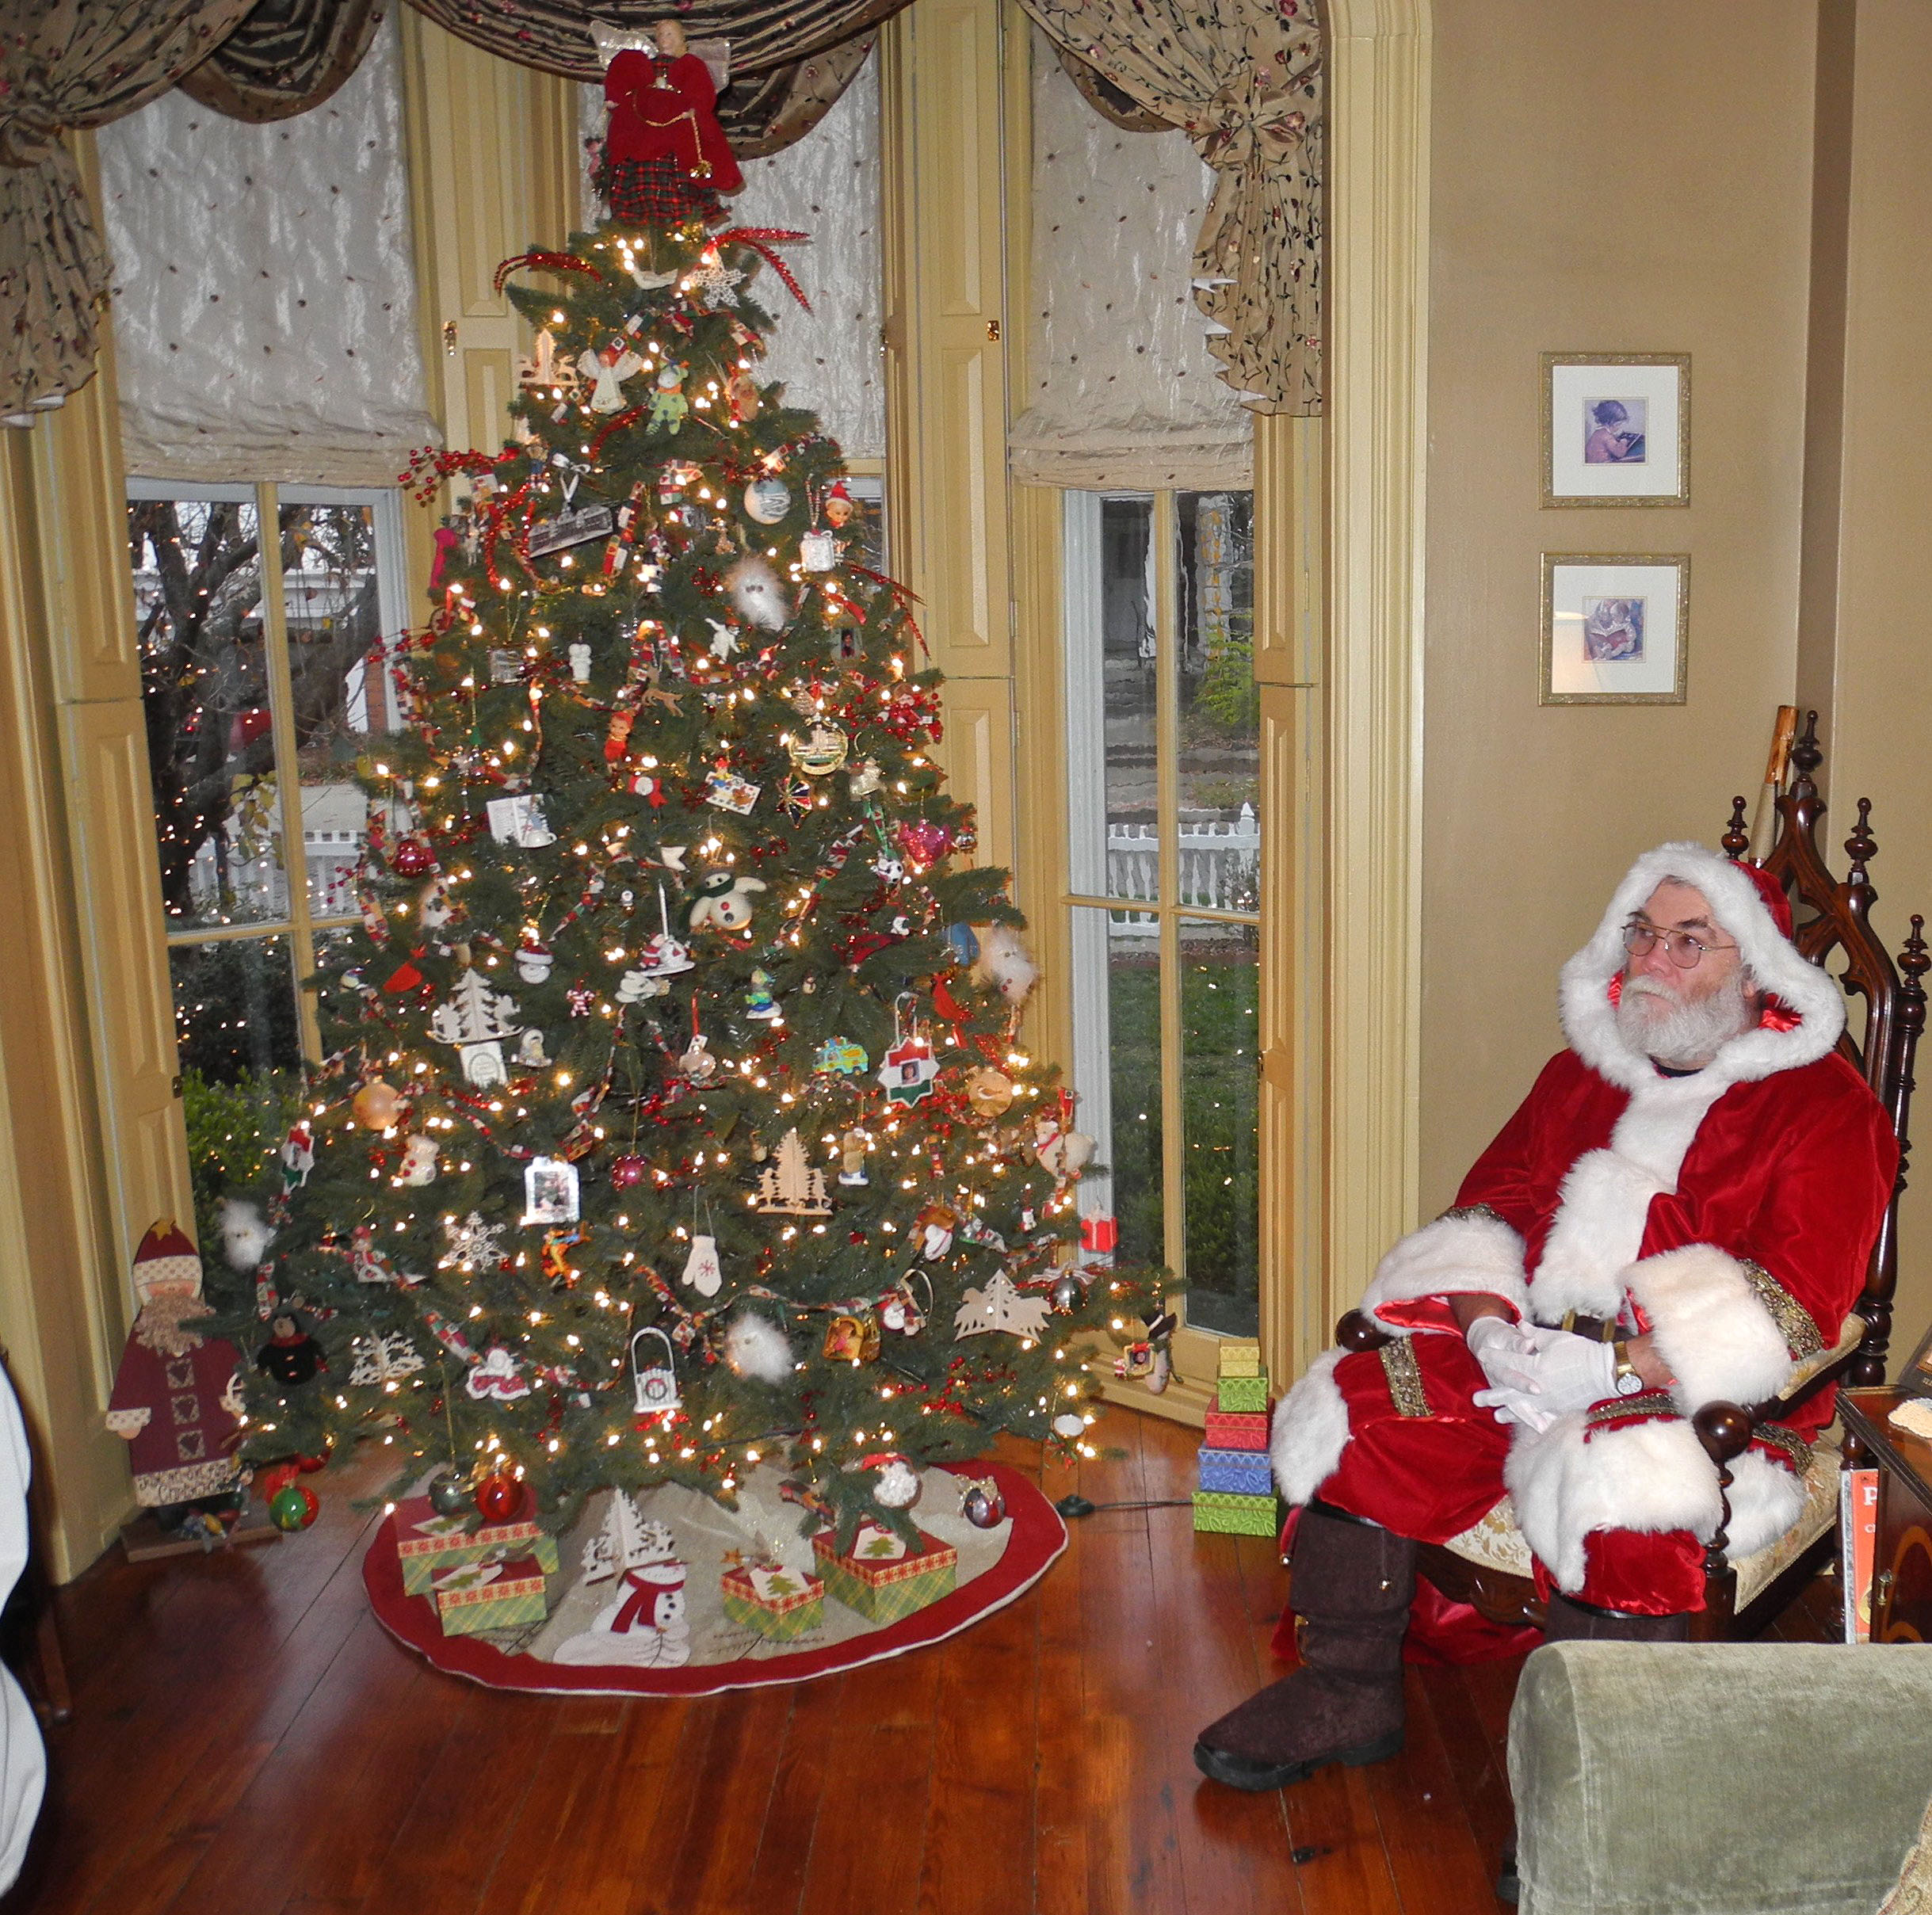 Victorian Christmas Decorations: Victorian Christmas Tour In Parkersburg Showcases Old-time